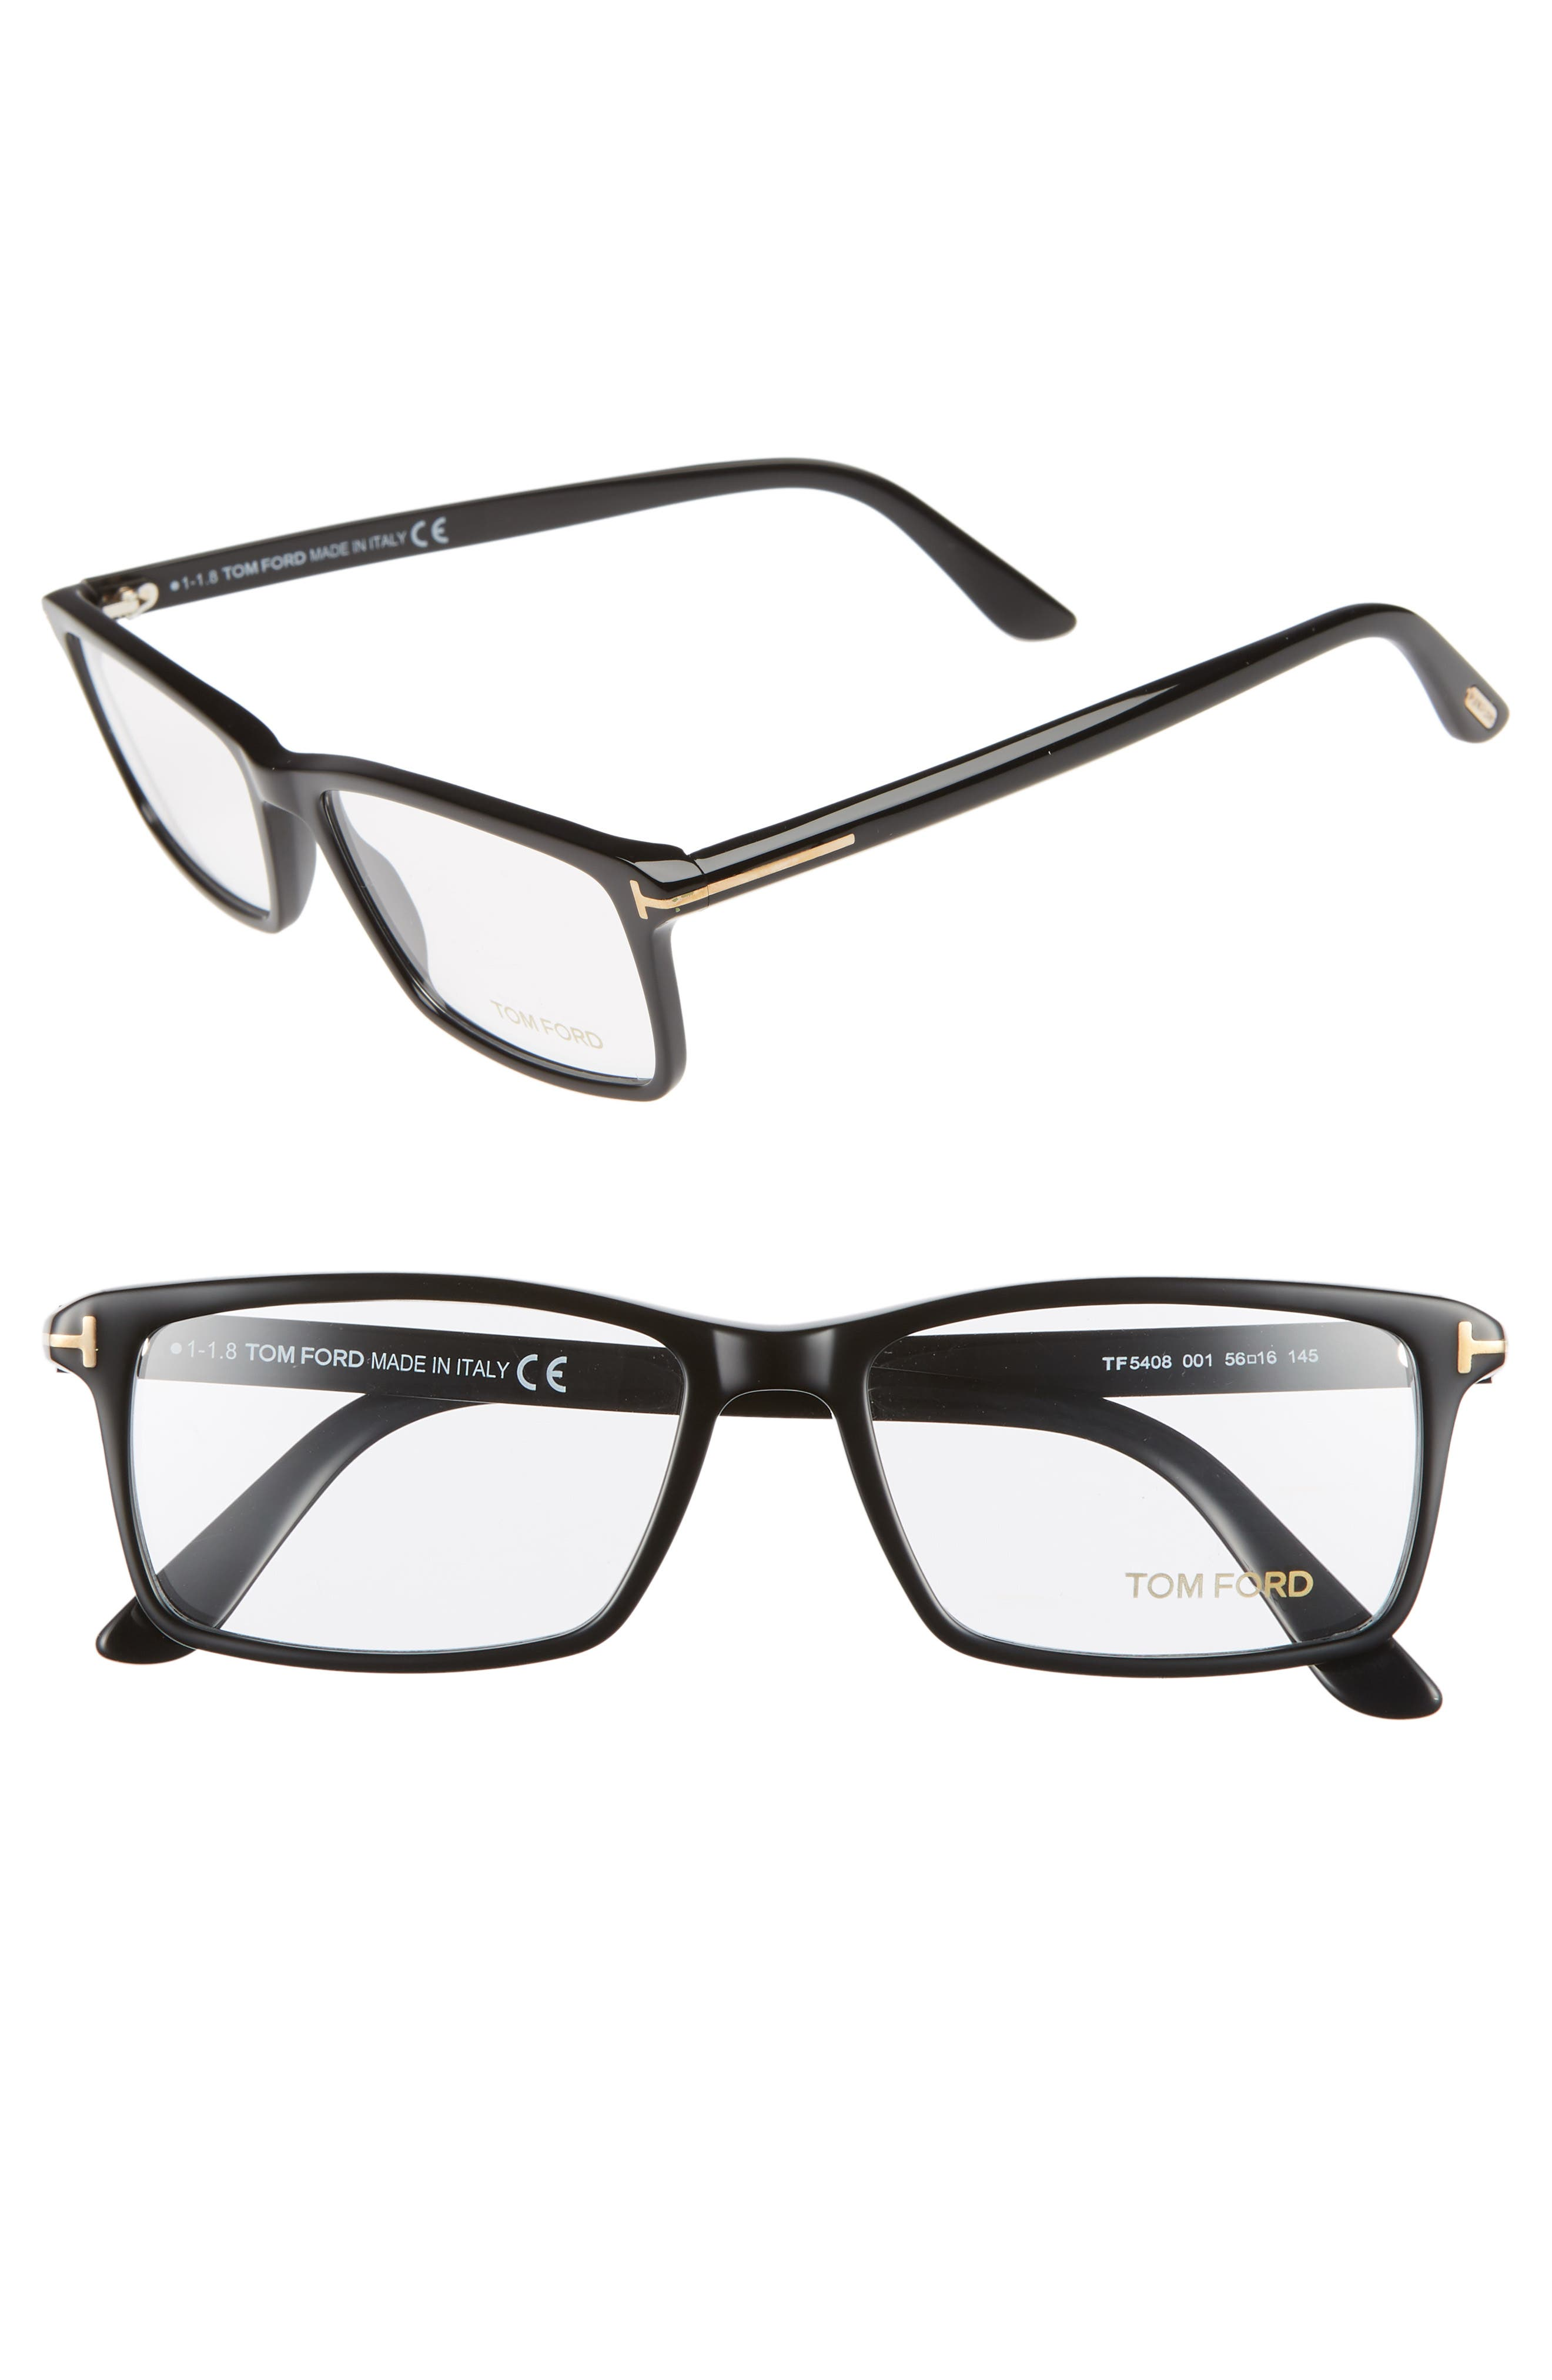 2bed6d891627 Tom Ford Optical Frames   Reading Glasses